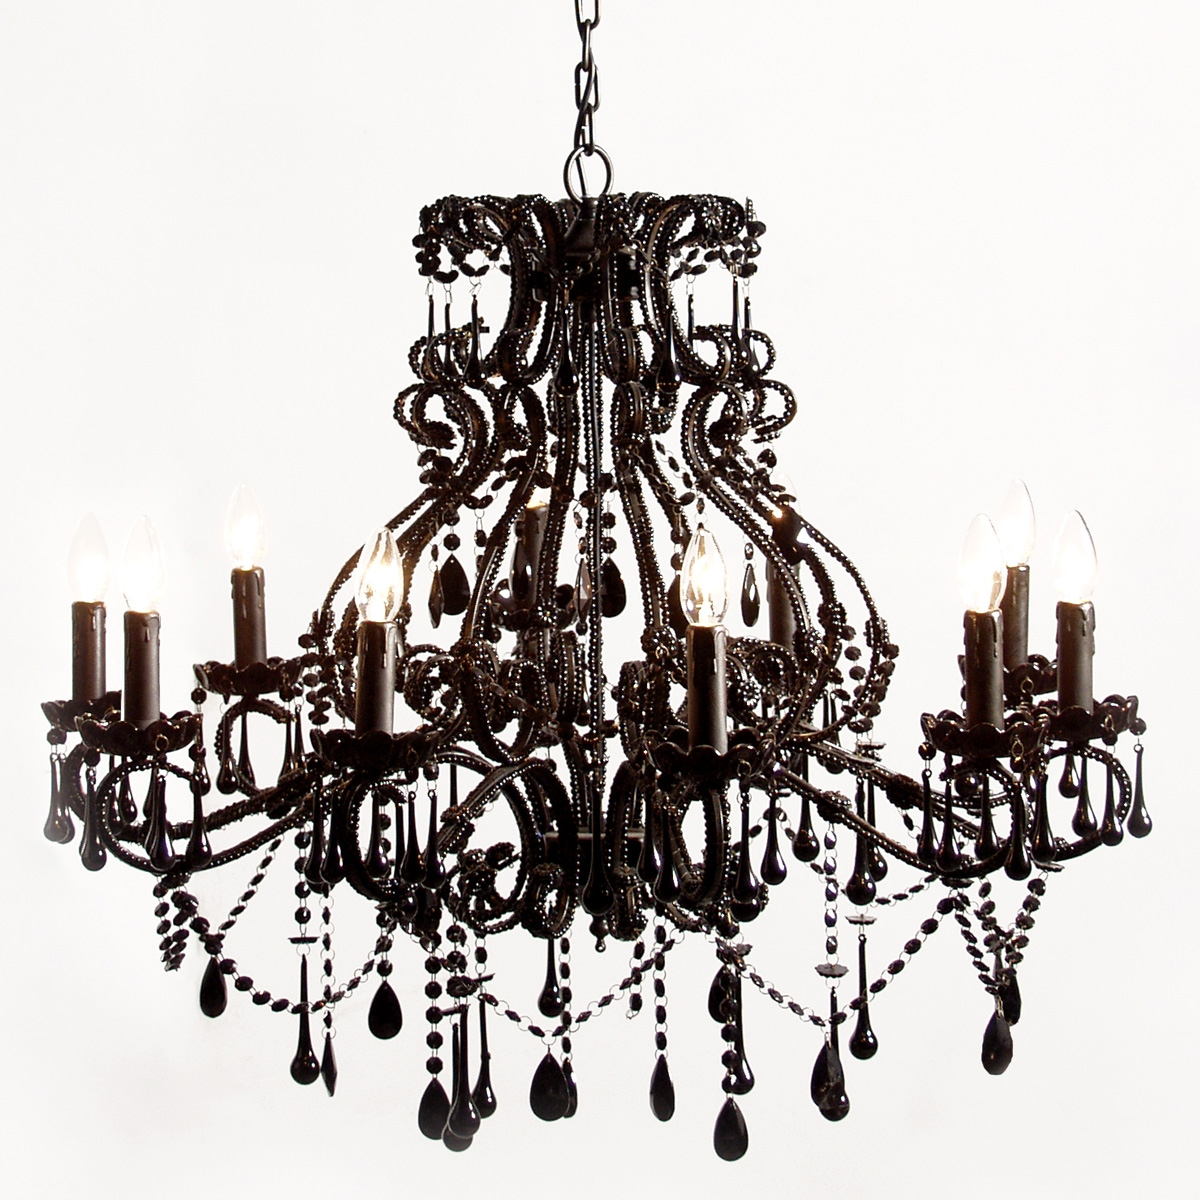 Stunning New Black Chandeliers Bedroom Lowes Courtagerivegauche Intended For Black Chandelier Bedroom (Image 13 of 15)